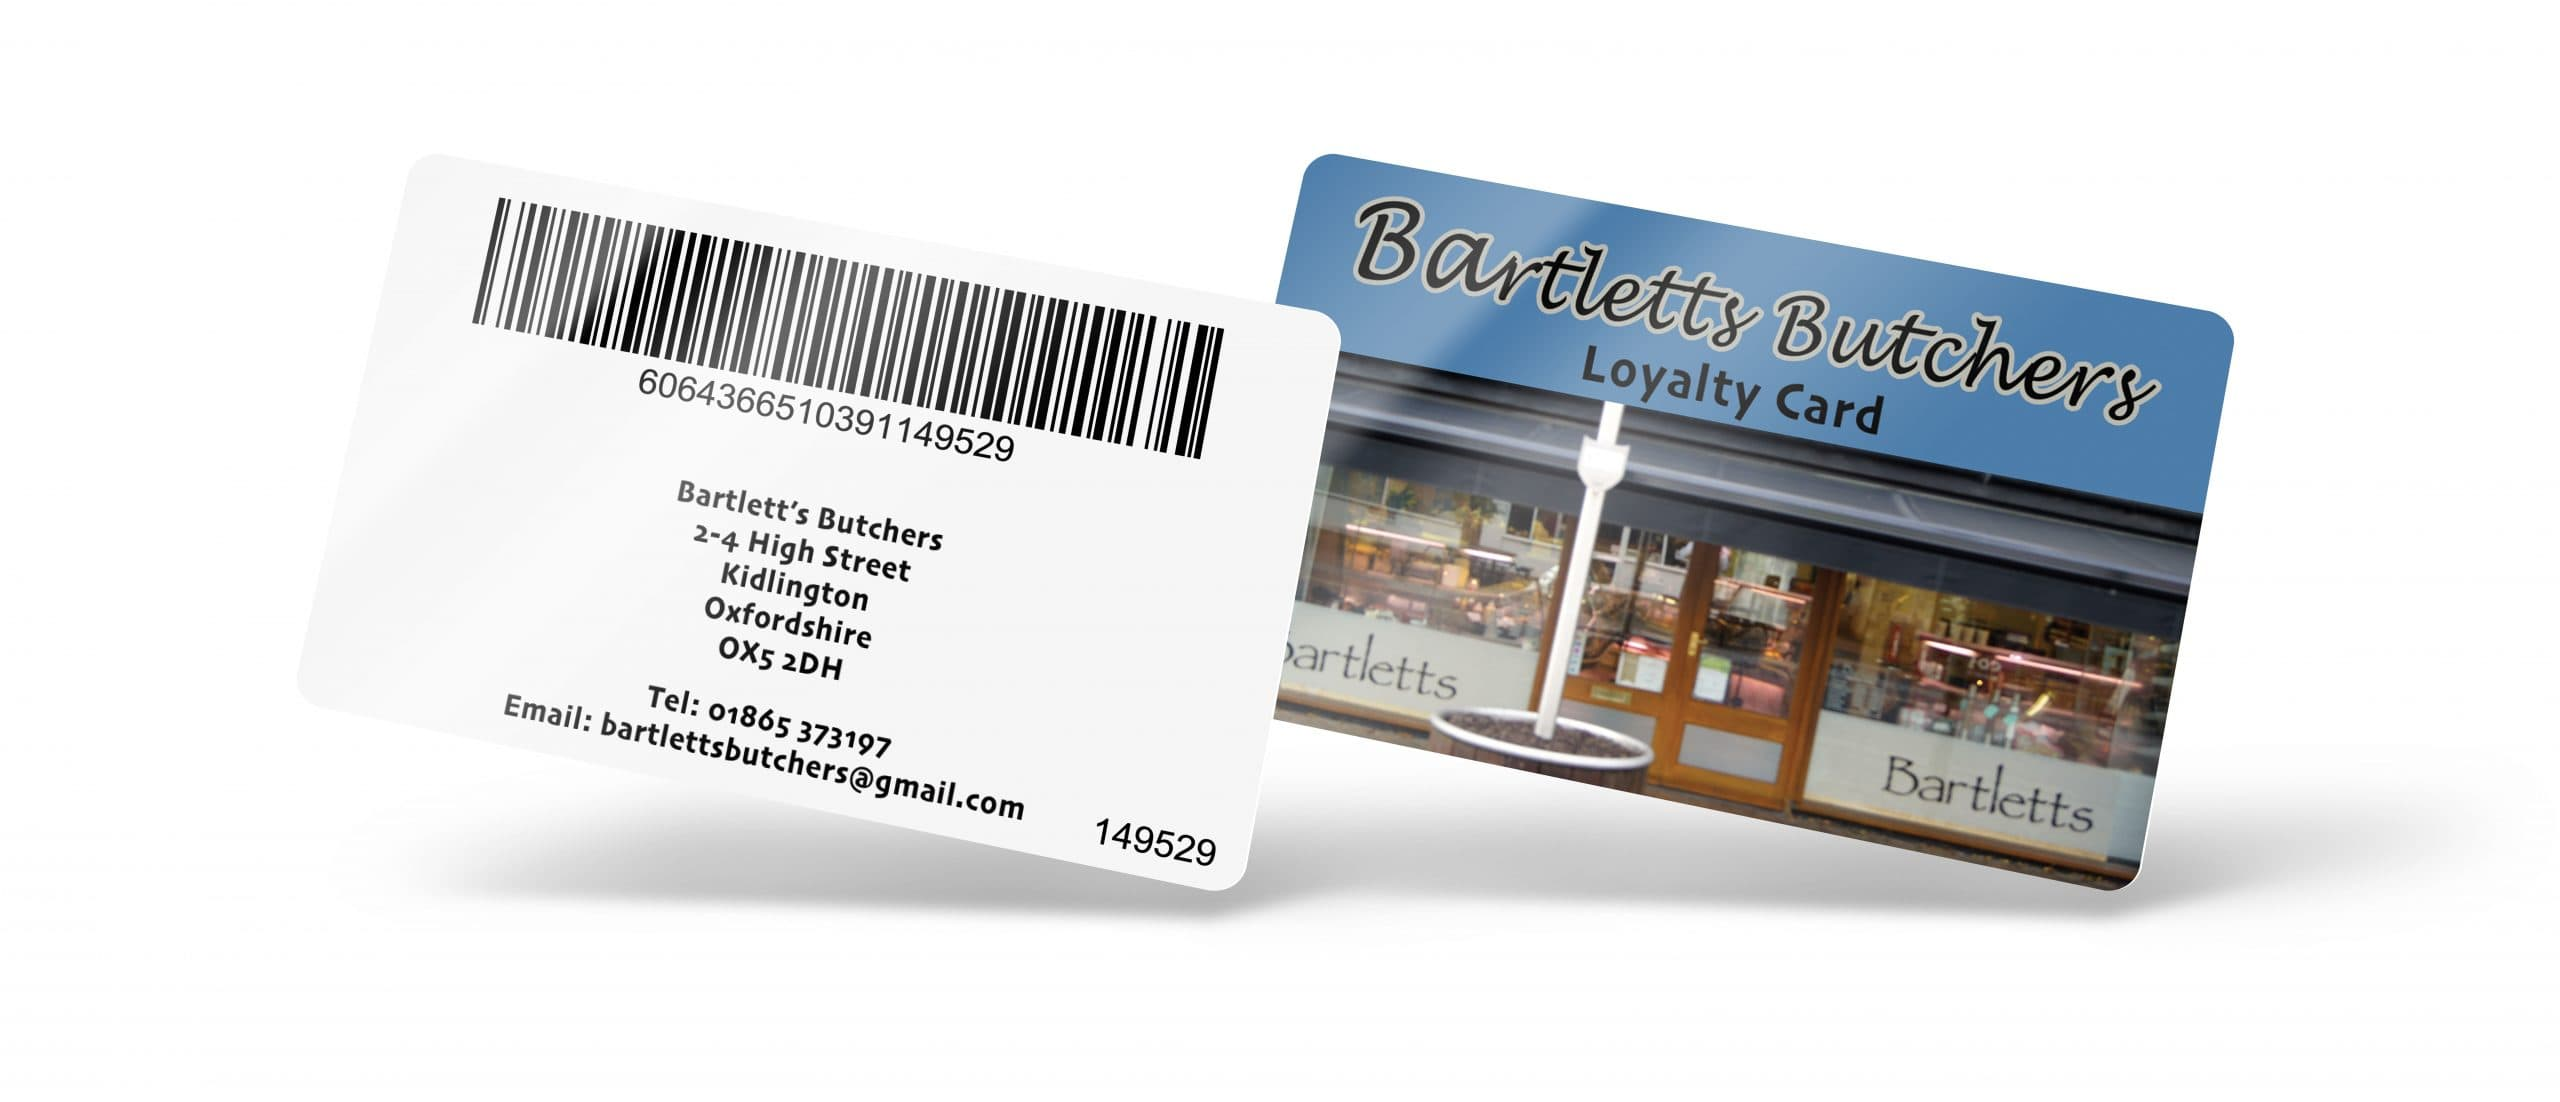 Bartlett's Butchers Loyalty Card Front and Back